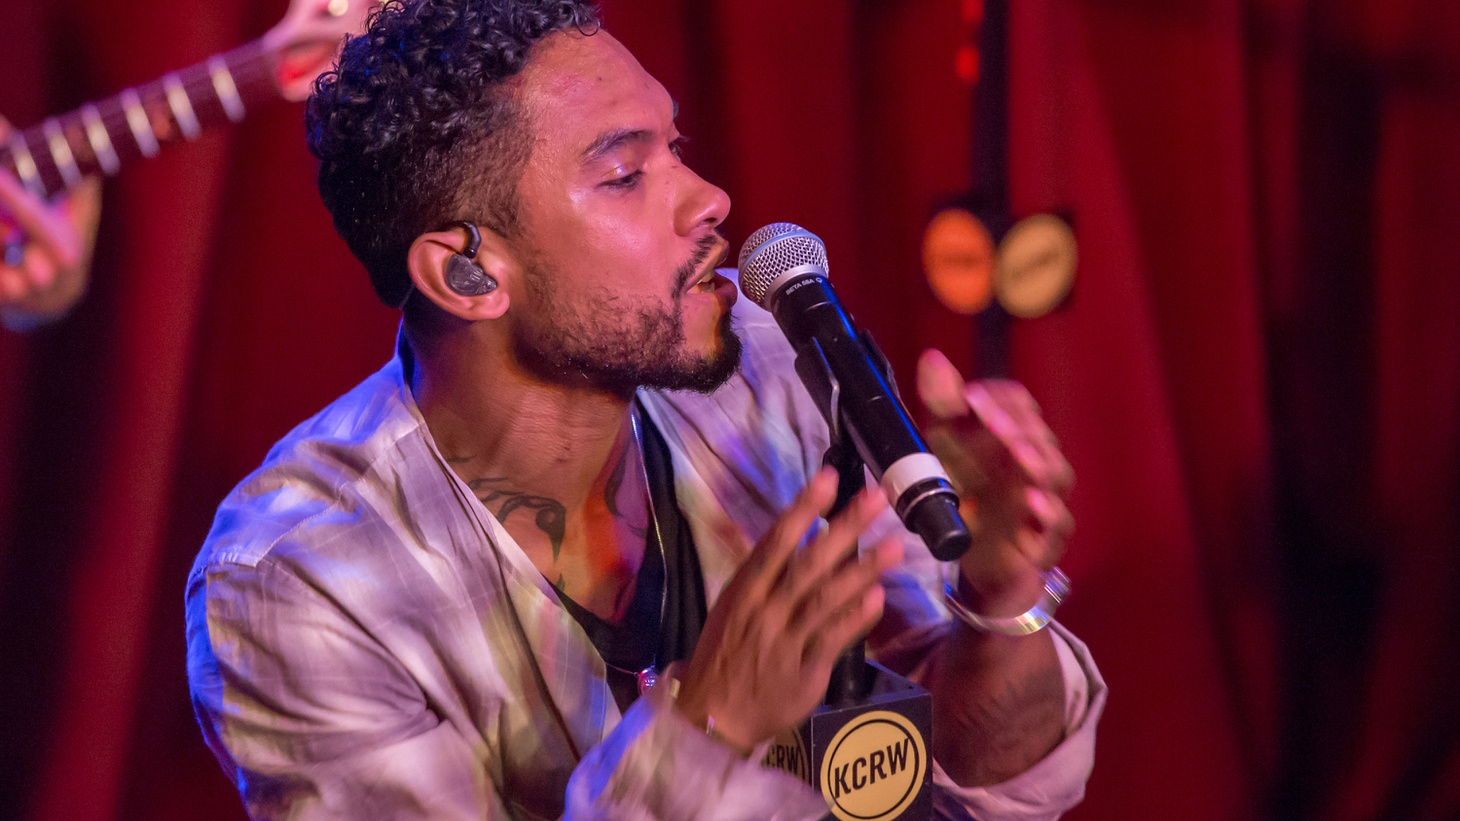 Miguel is a proud LA native whose seductive hybrid of R&B and soul and boundary-pushing experimentation has earned him comparisons to Prince and cemented his role as a creative force in music today – and likely many years to come.